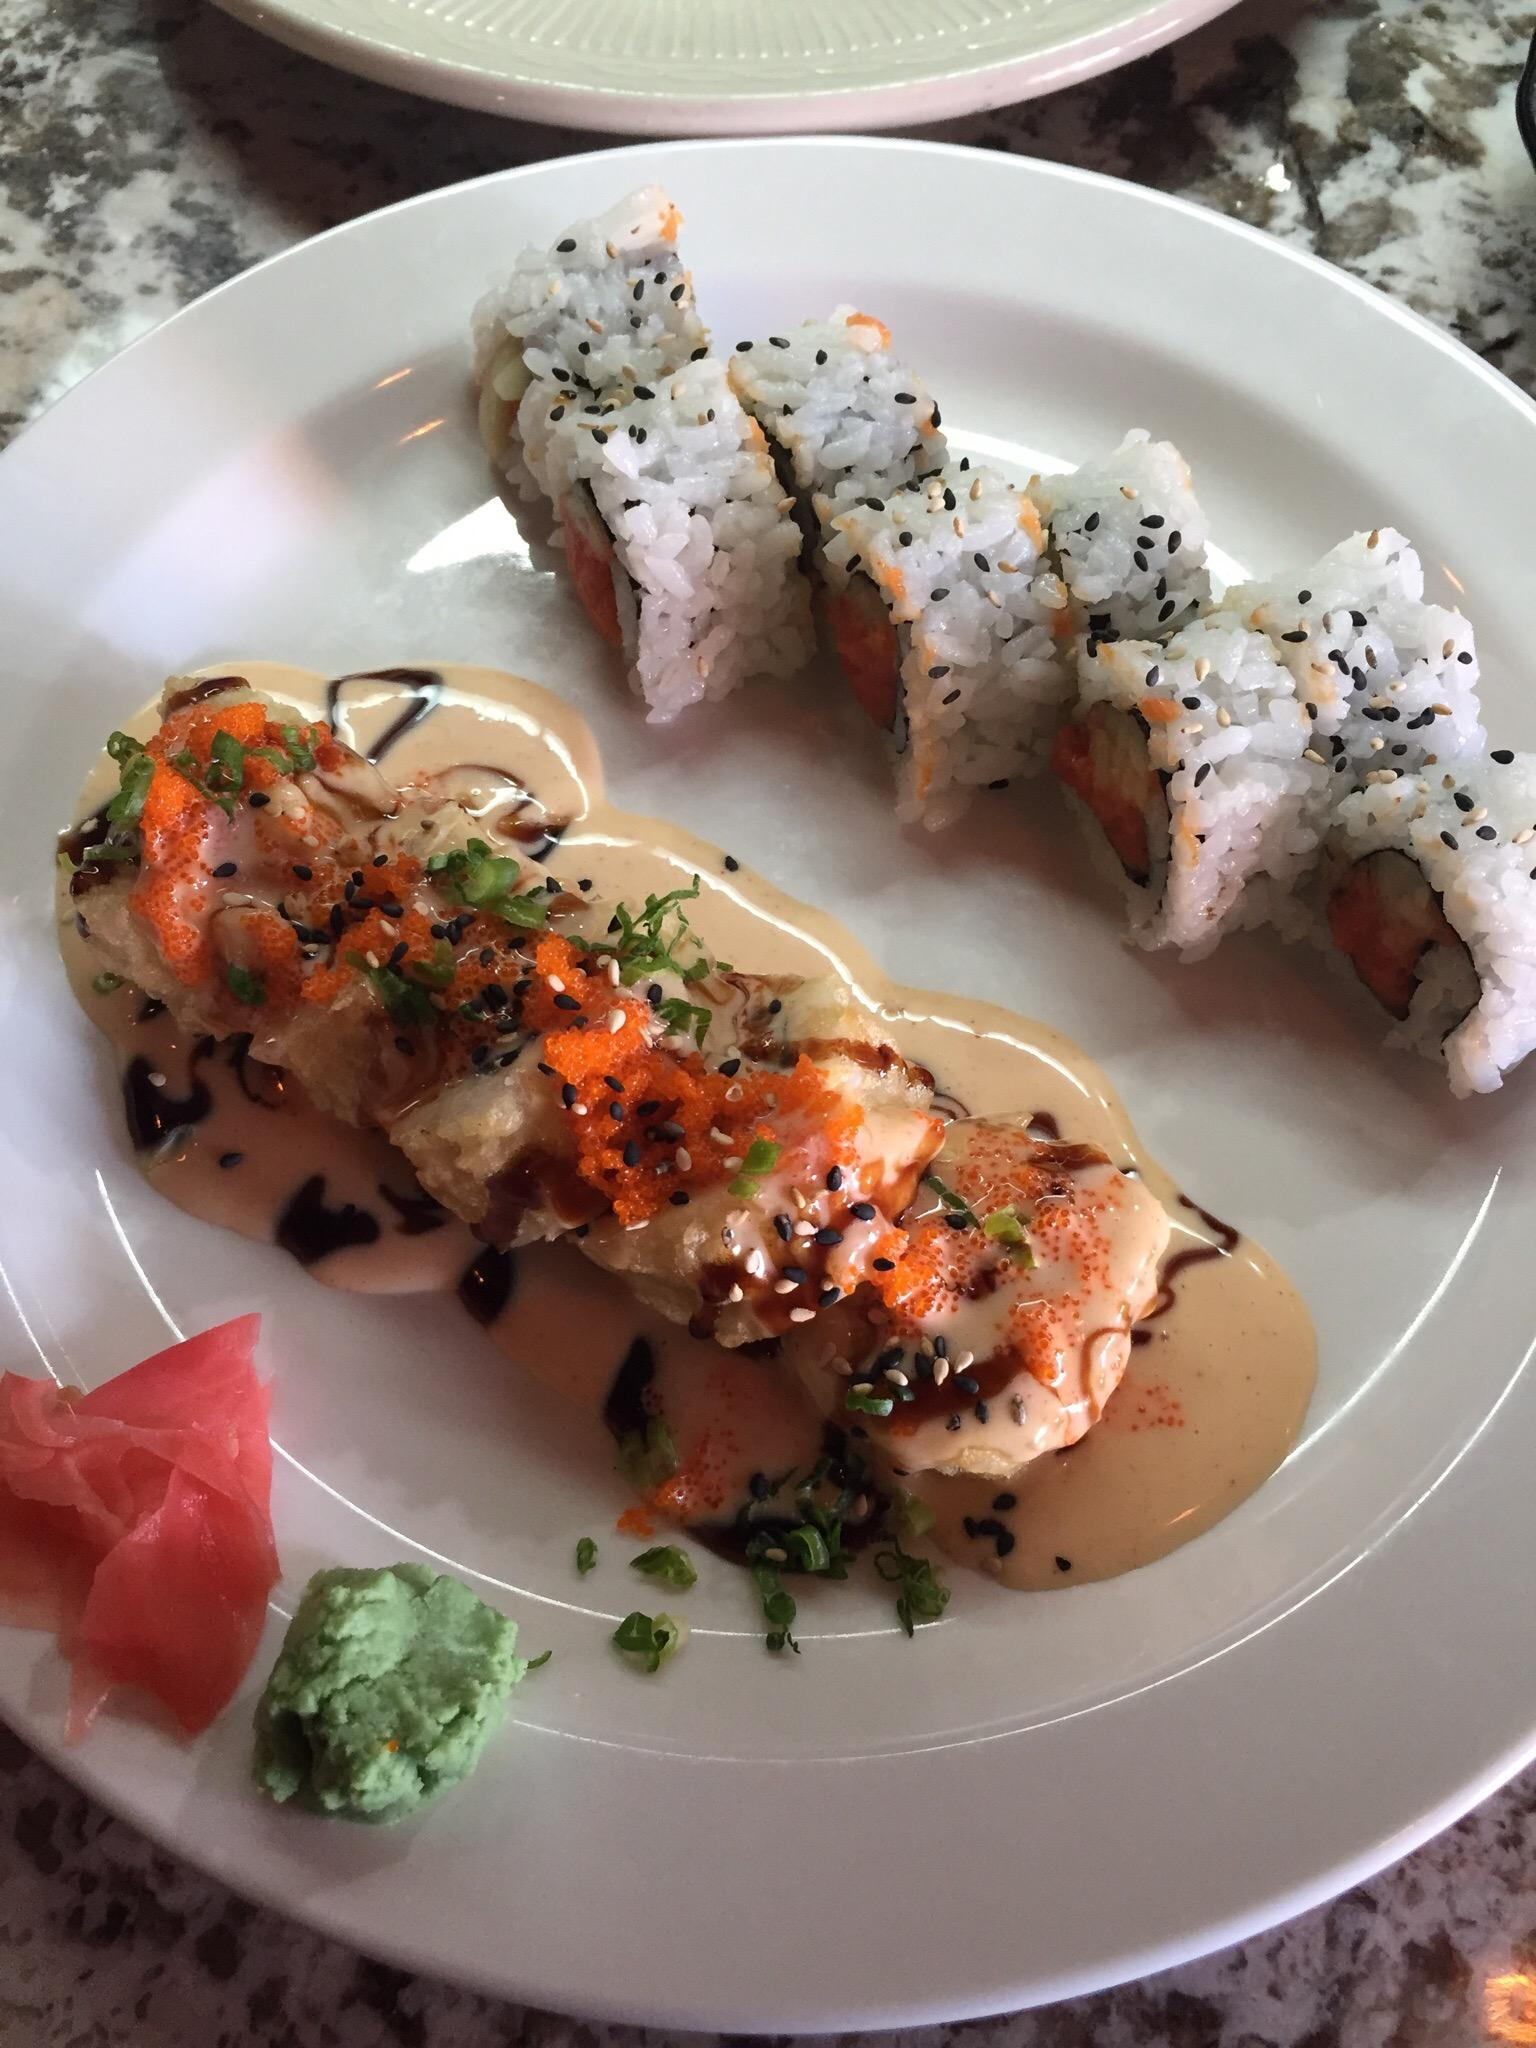 Where to eat Japanese food in Goldsboro: The Best Restaurants and Bars